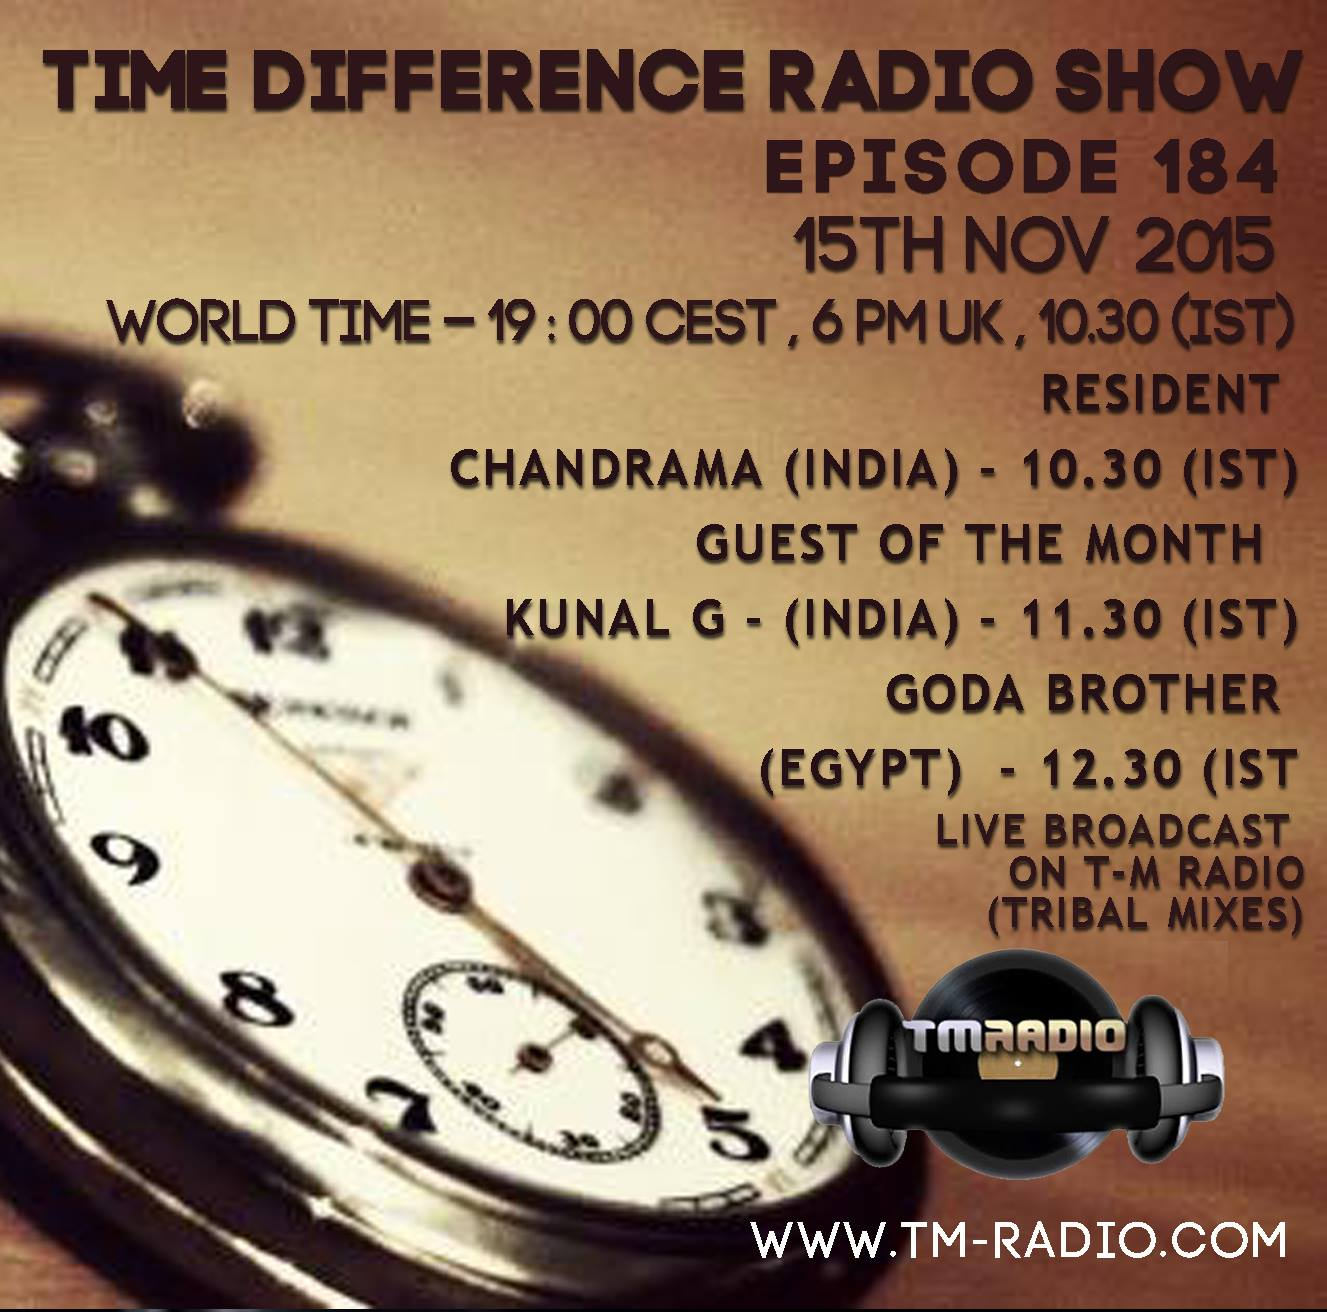 download → Chandrama, Goda Brother, Kunal G - Time Differences 184 on TM Radio - 15-Nov-2015